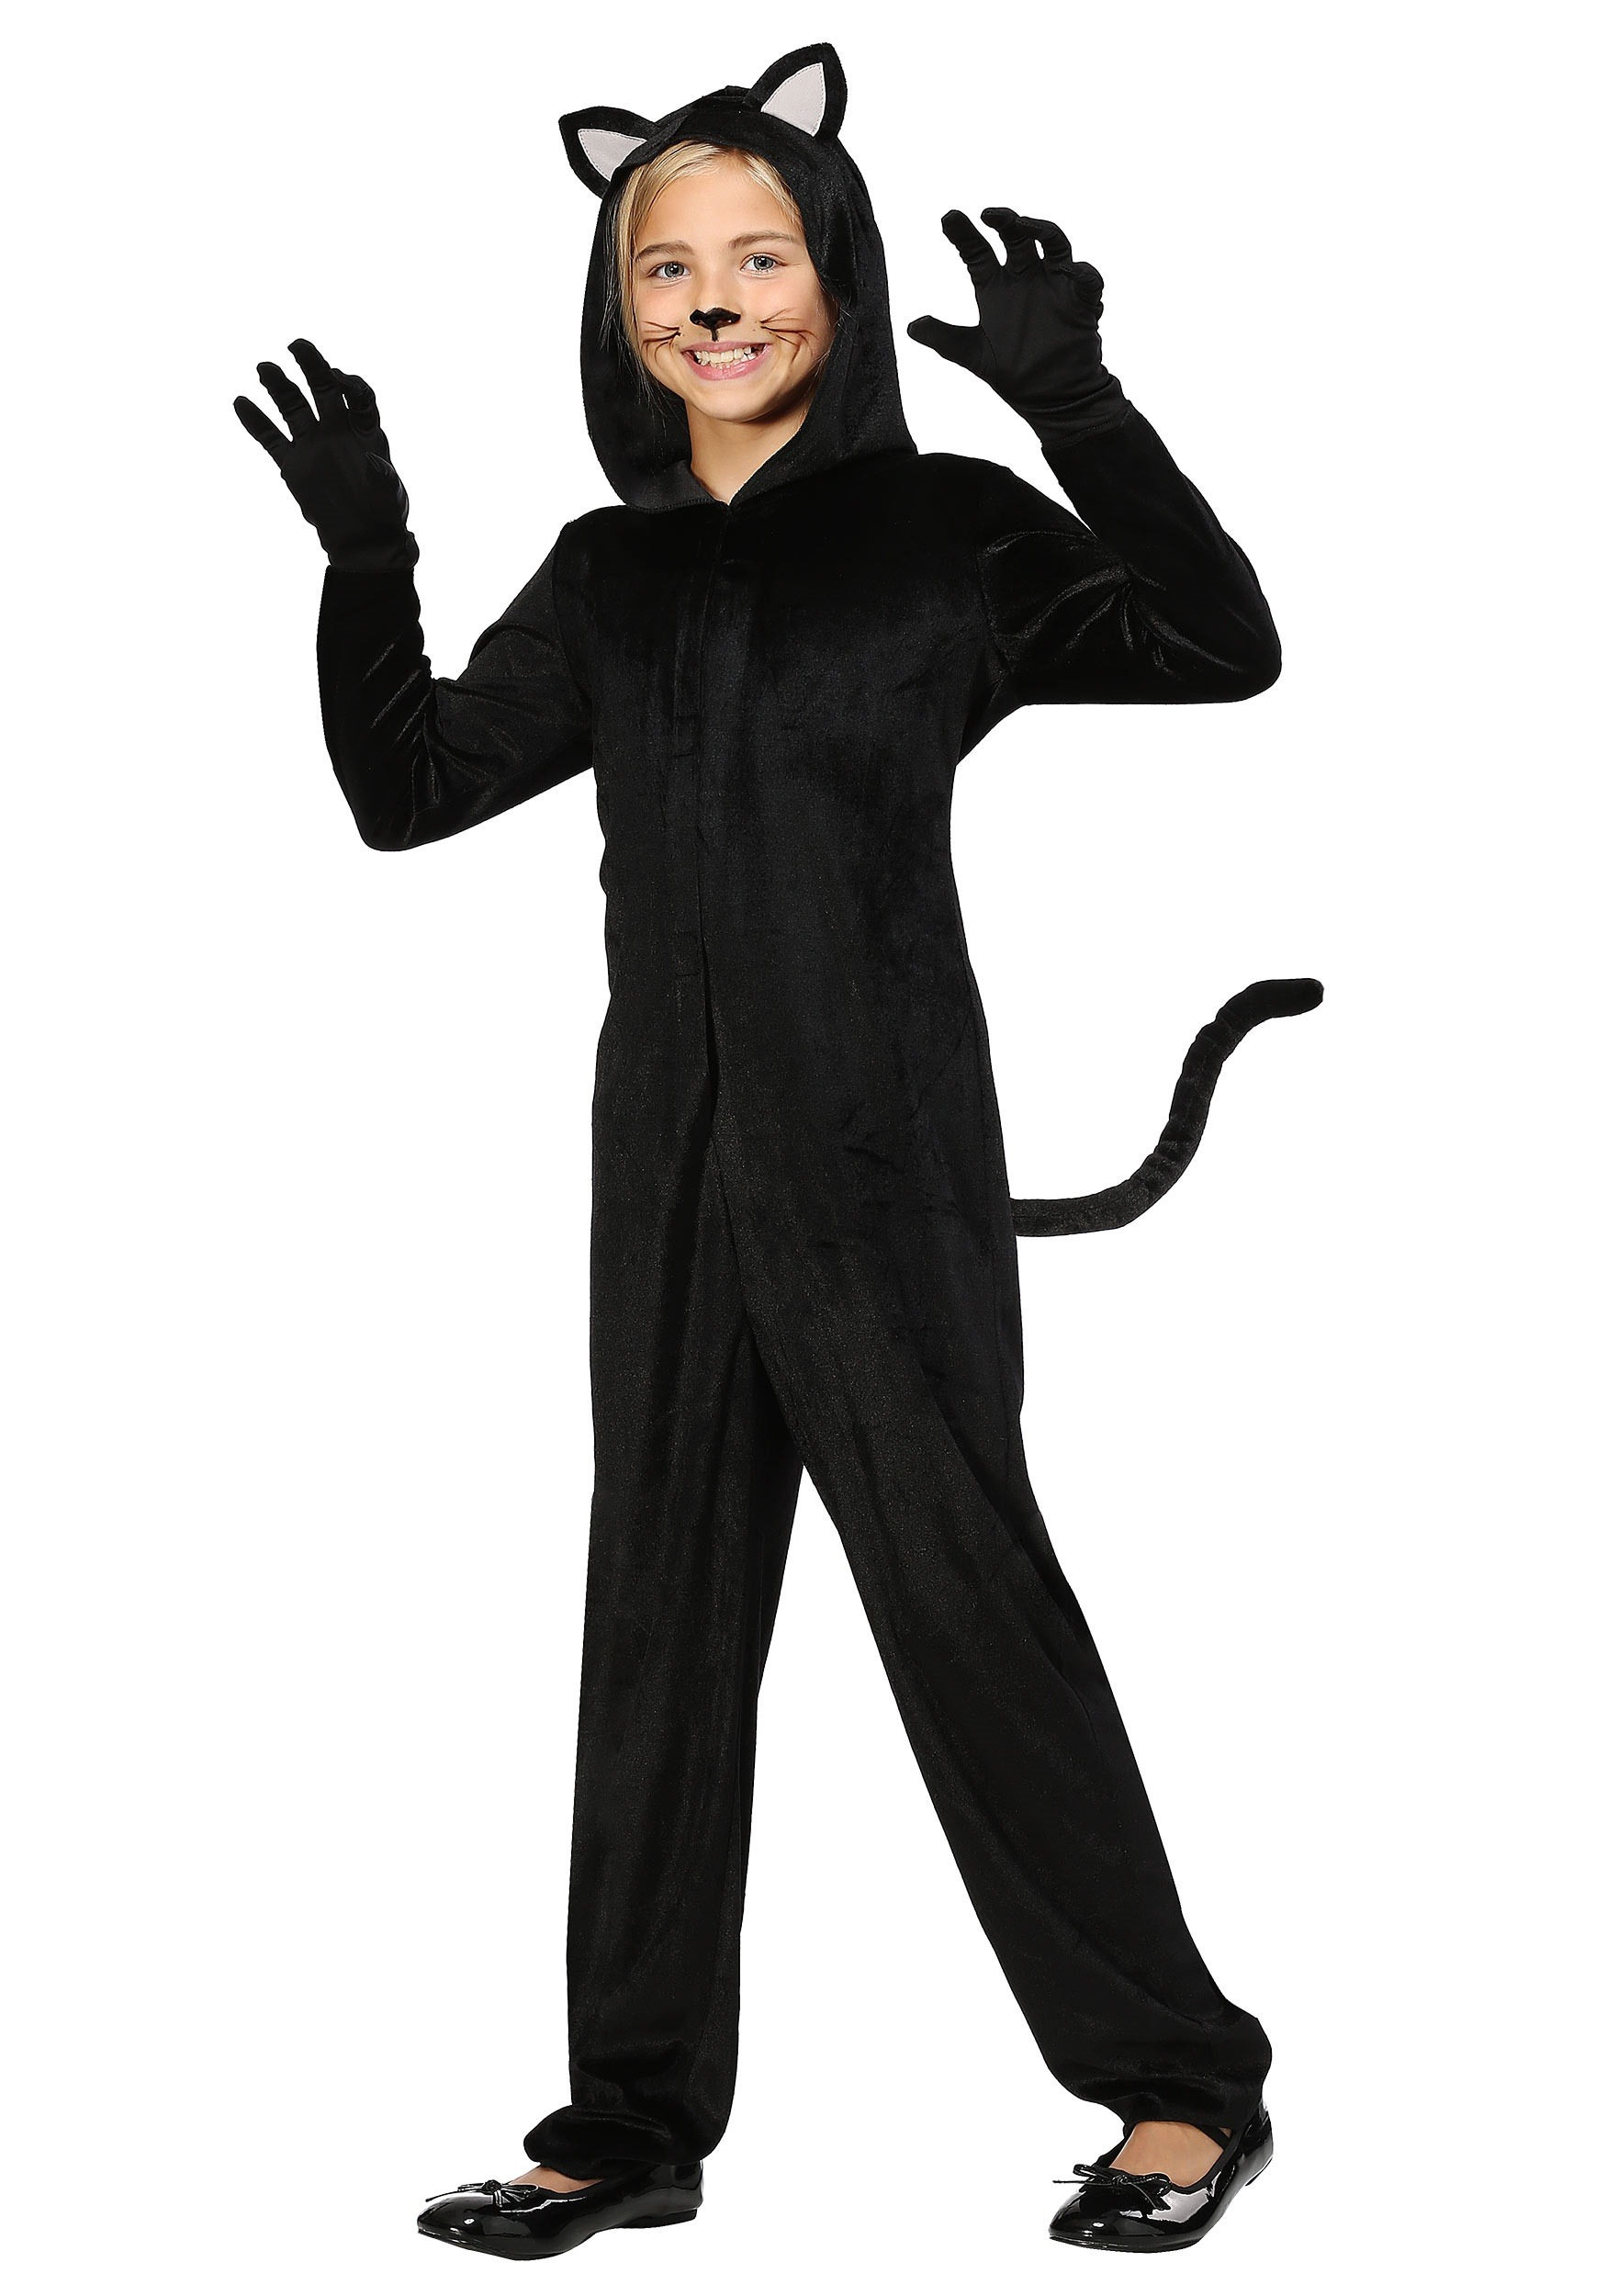 Black Cat Girls Costume  sc 1 st  Halloween Costumes & Black Cat Costume for Girls